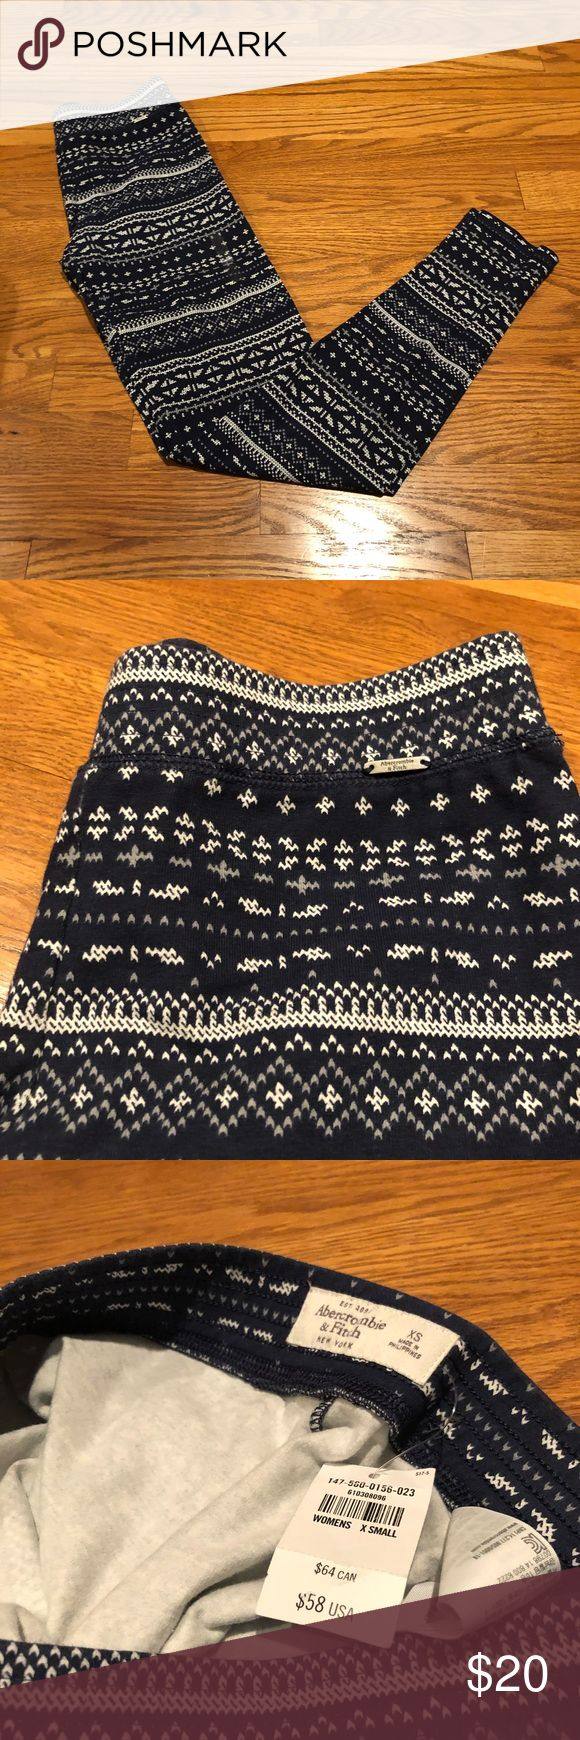 Abercrombie and Fitch Aztec Tribal Leggings Abercrombie and Fitch Aztec Tribal Leggings in blue and white. Women's size XS. Still has original tag and XS size sticker on it. Abercrombie & Fitch Pants Leggings